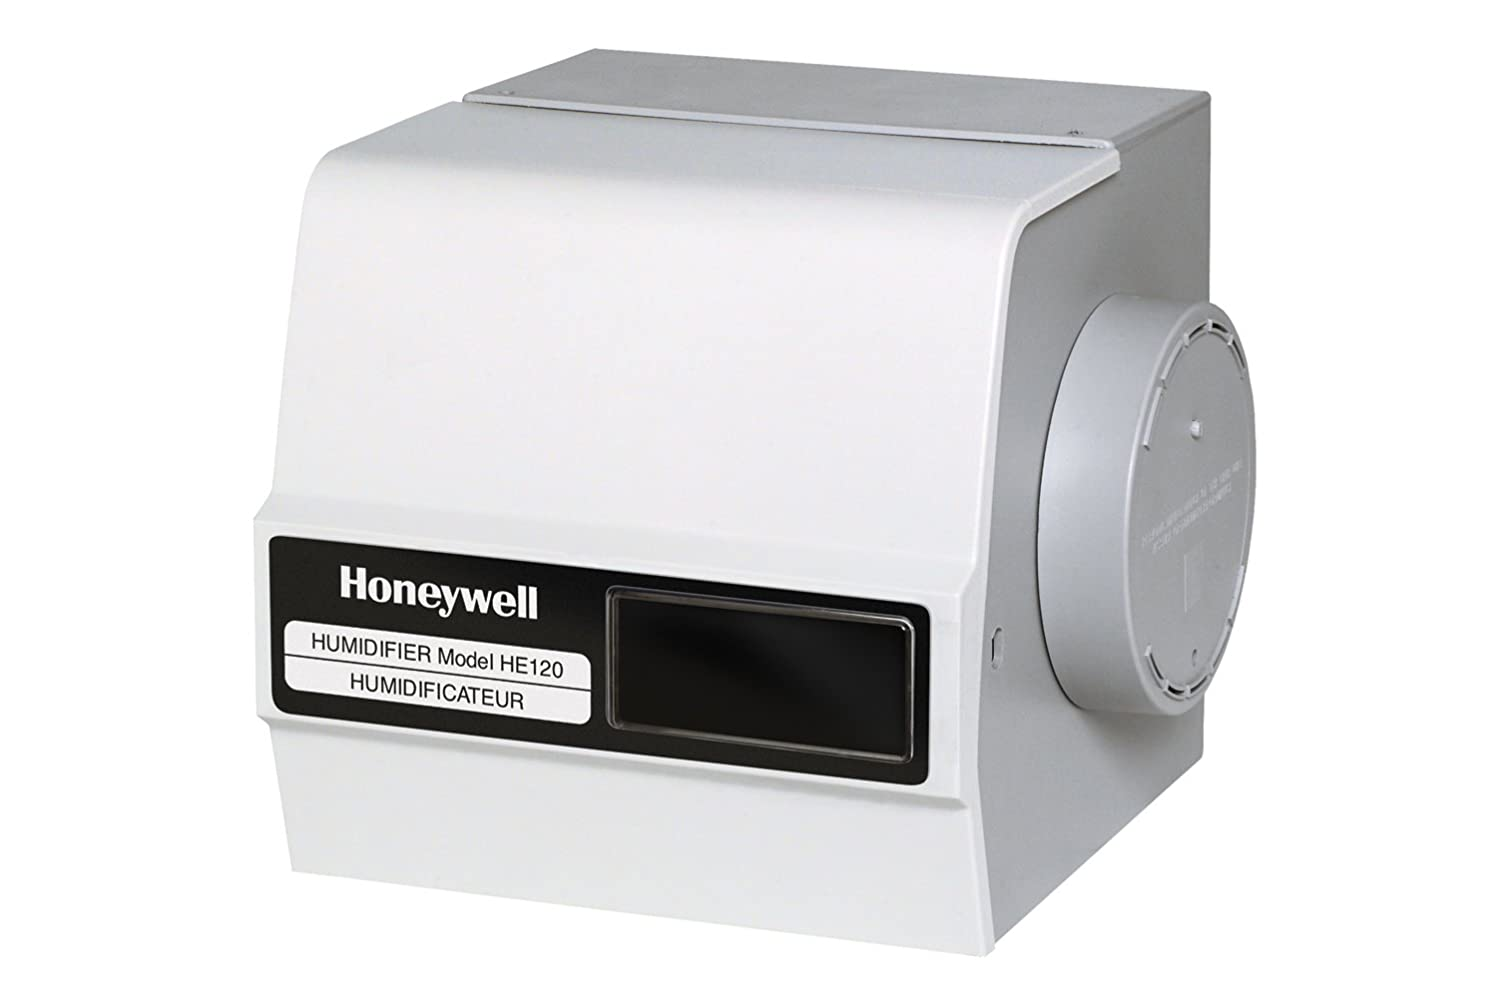 Honeywell HE120A Humidifier Review